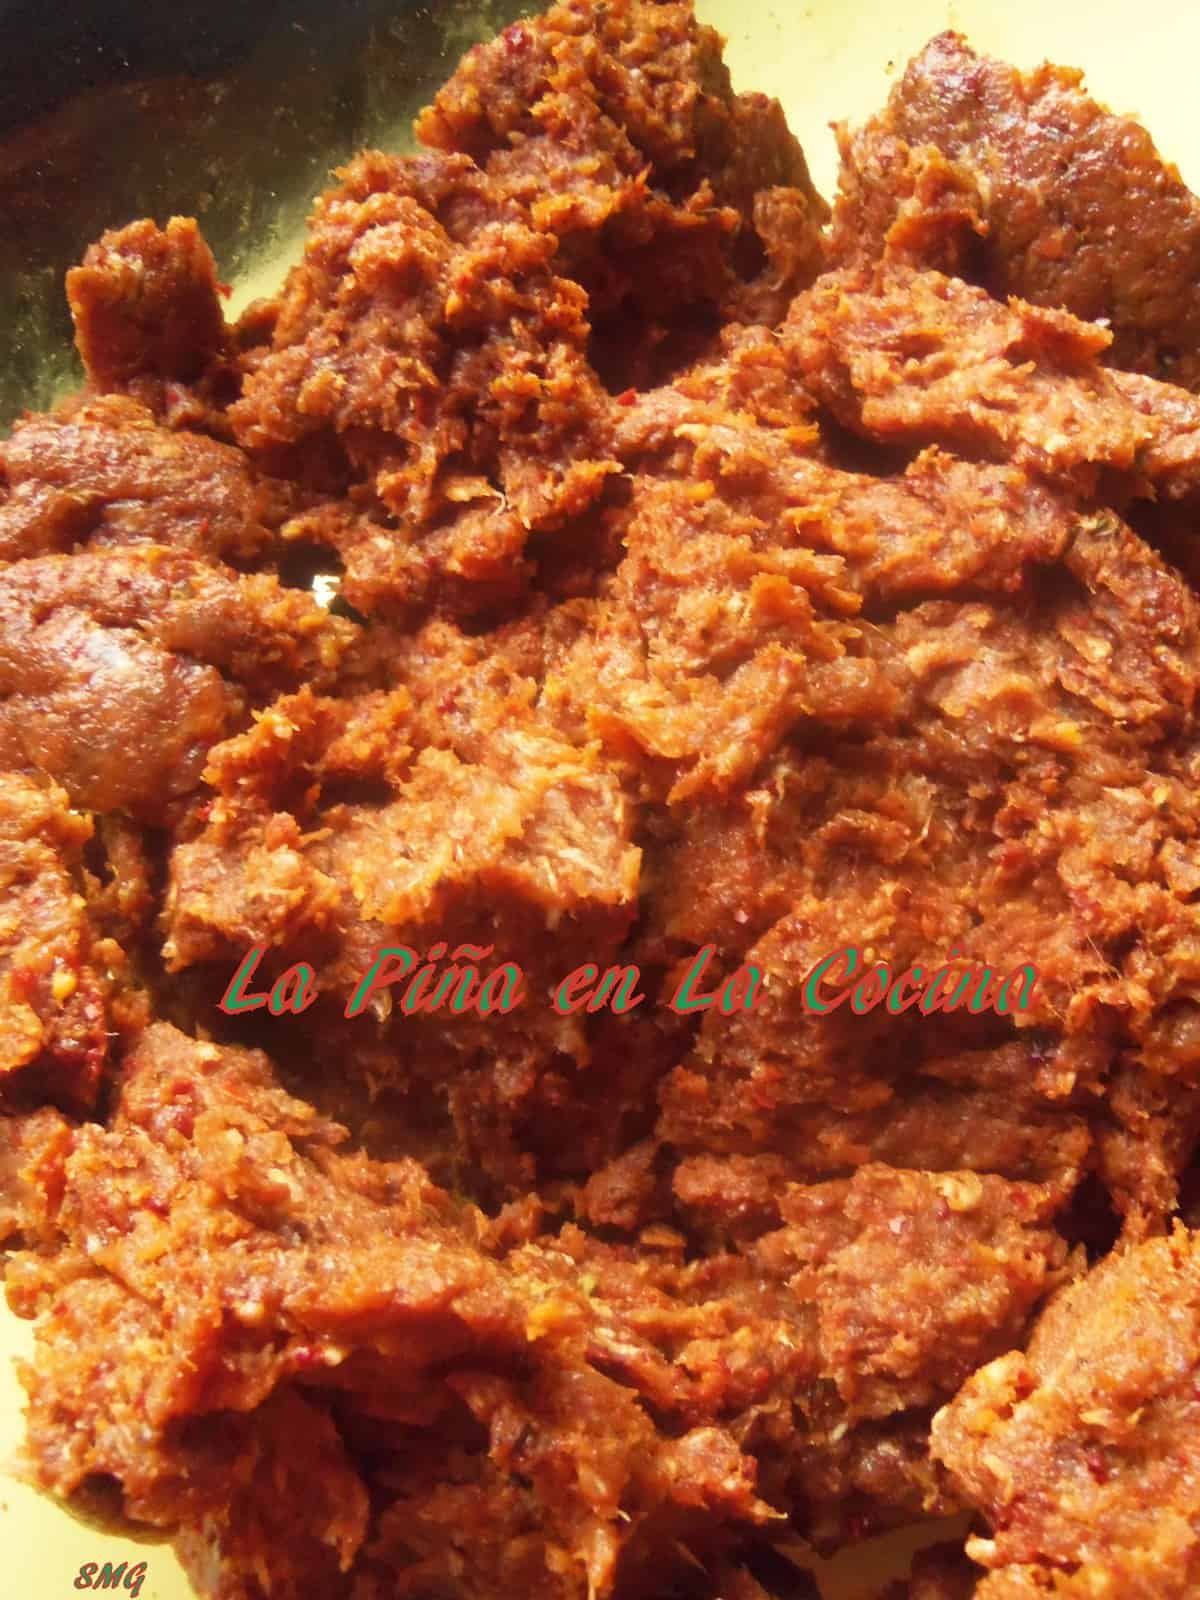 Spicy Mexican Chorizo Prepared with Spice and Chile Blend